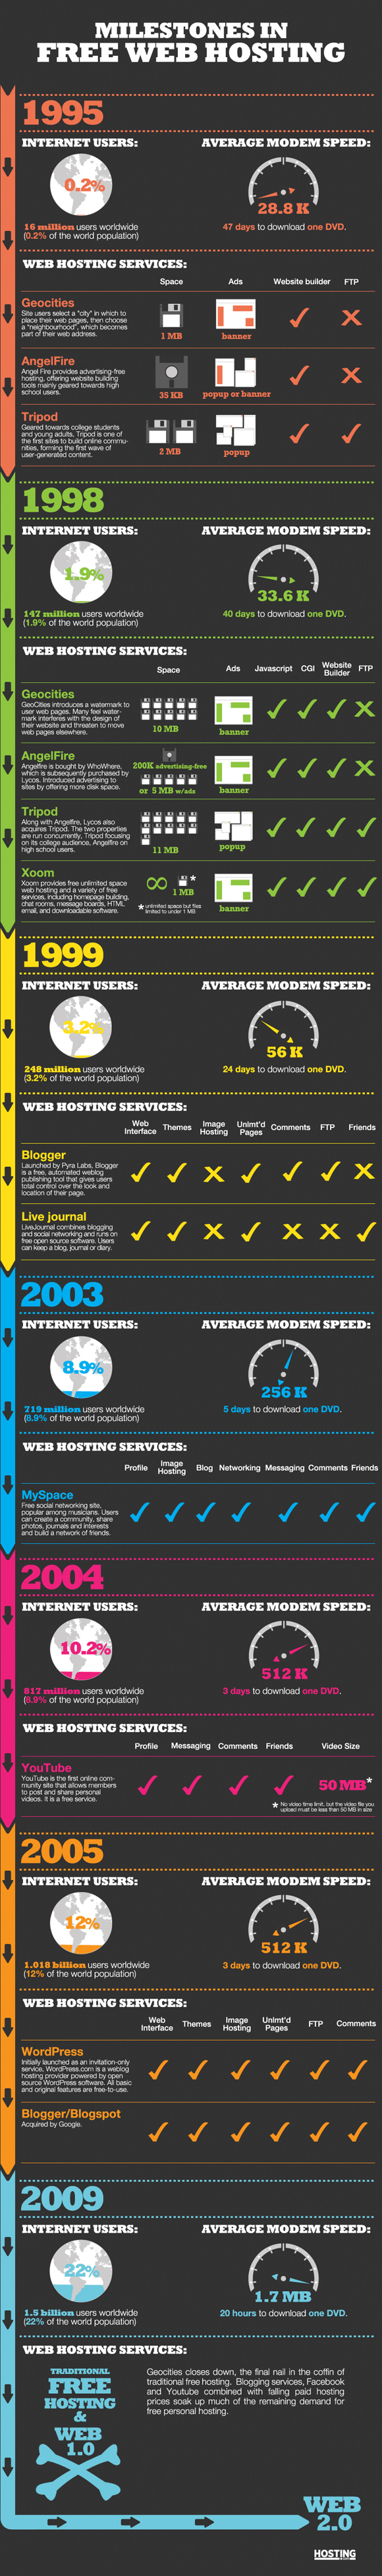 history-of-free-web-hosting